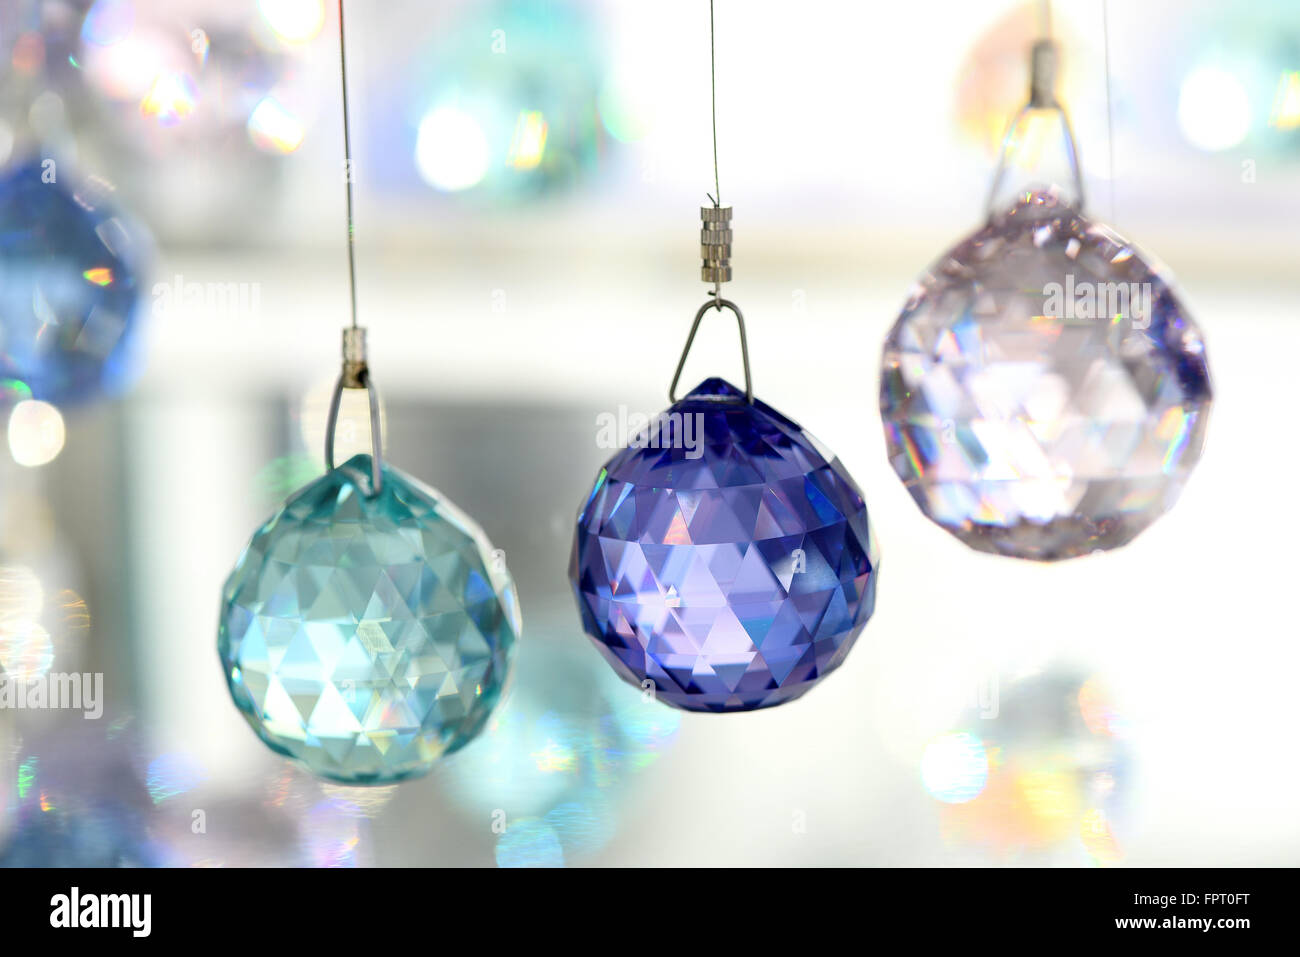 Selective focus close up of green, blue and clear crystal ornaments hung on string in store display - Stock Image